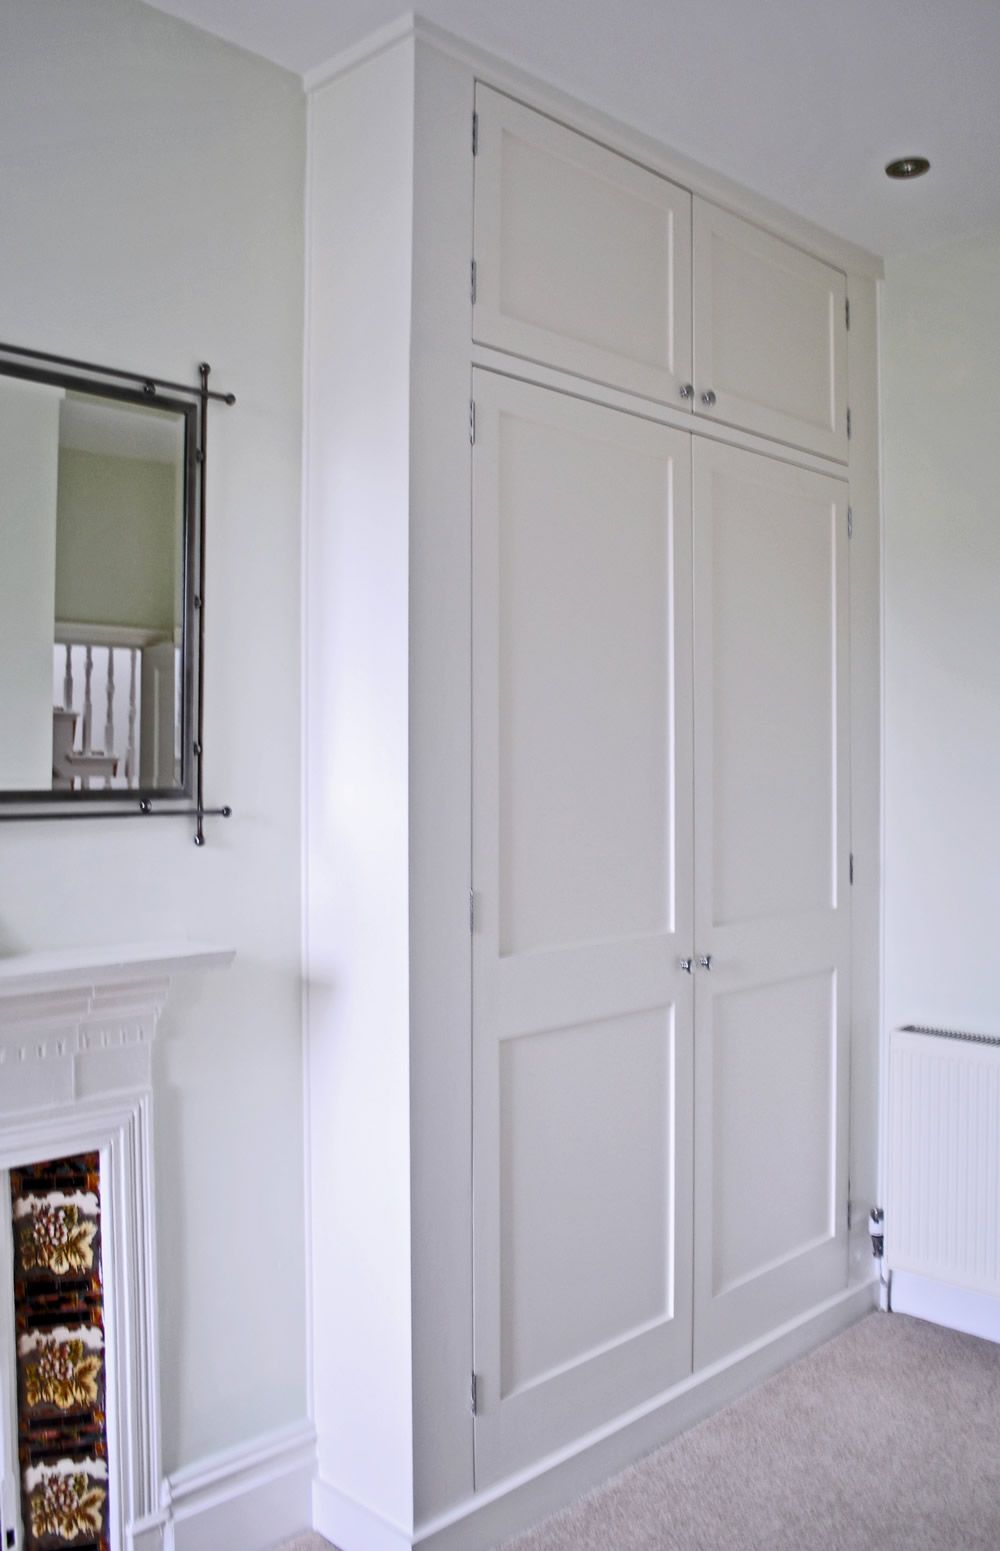 Bespoke Fitted Wardrobes And Cupboards London Alcove Company Bedroom Built In Wardrobe Alcove Wardrobe Bedroom Alcove